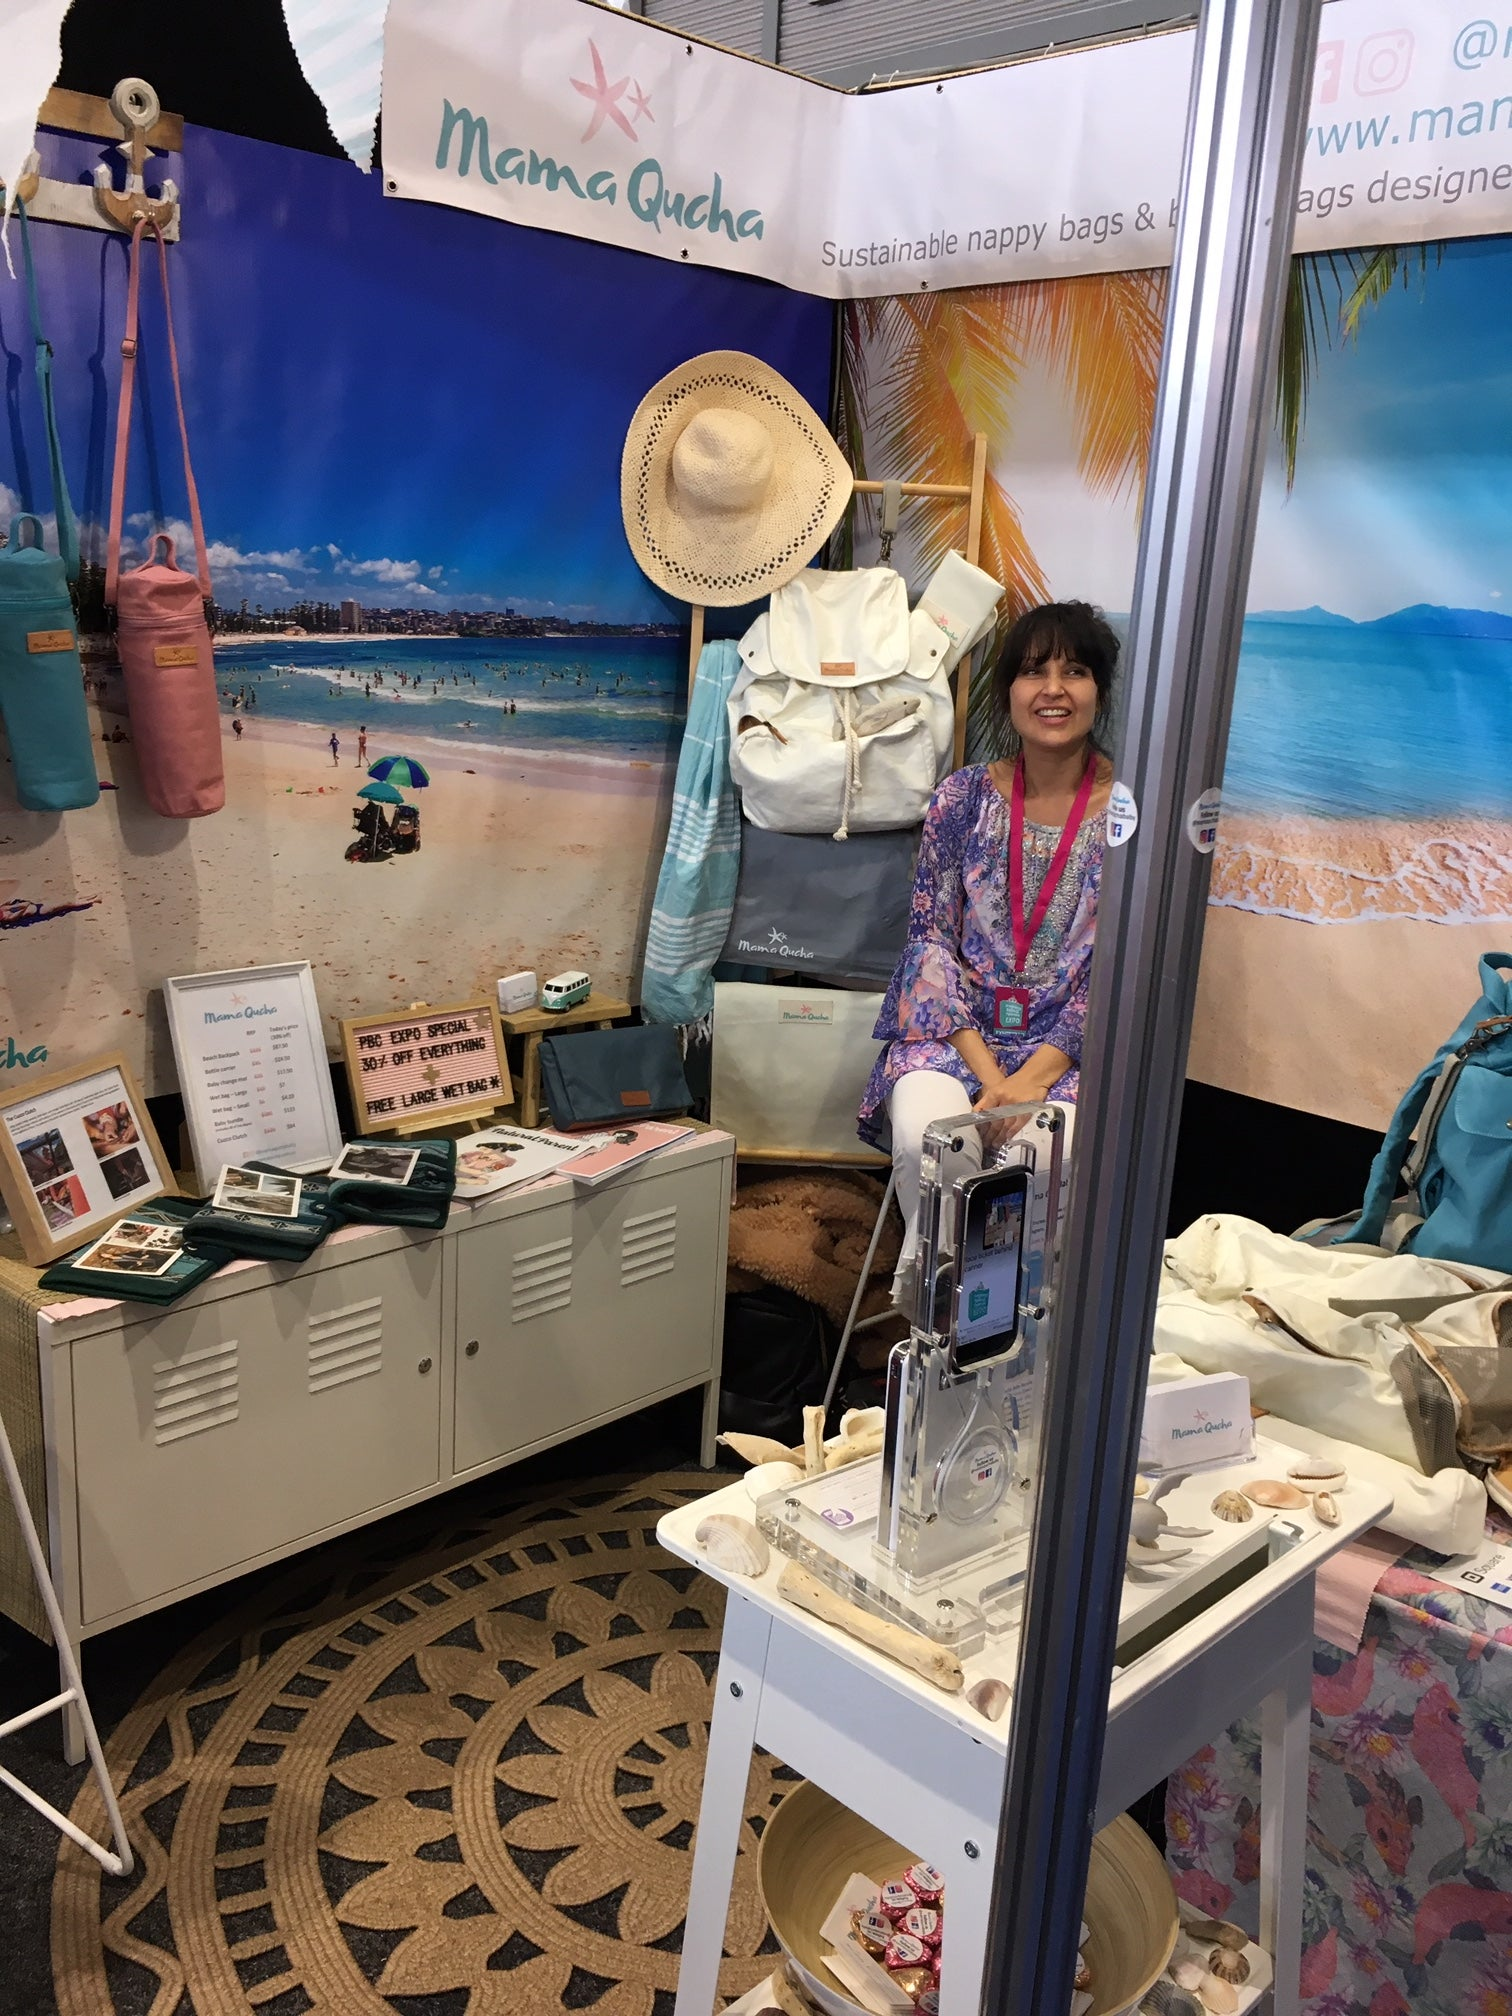 Mama Qucha at the PBC Expo in Sydney in May 2019